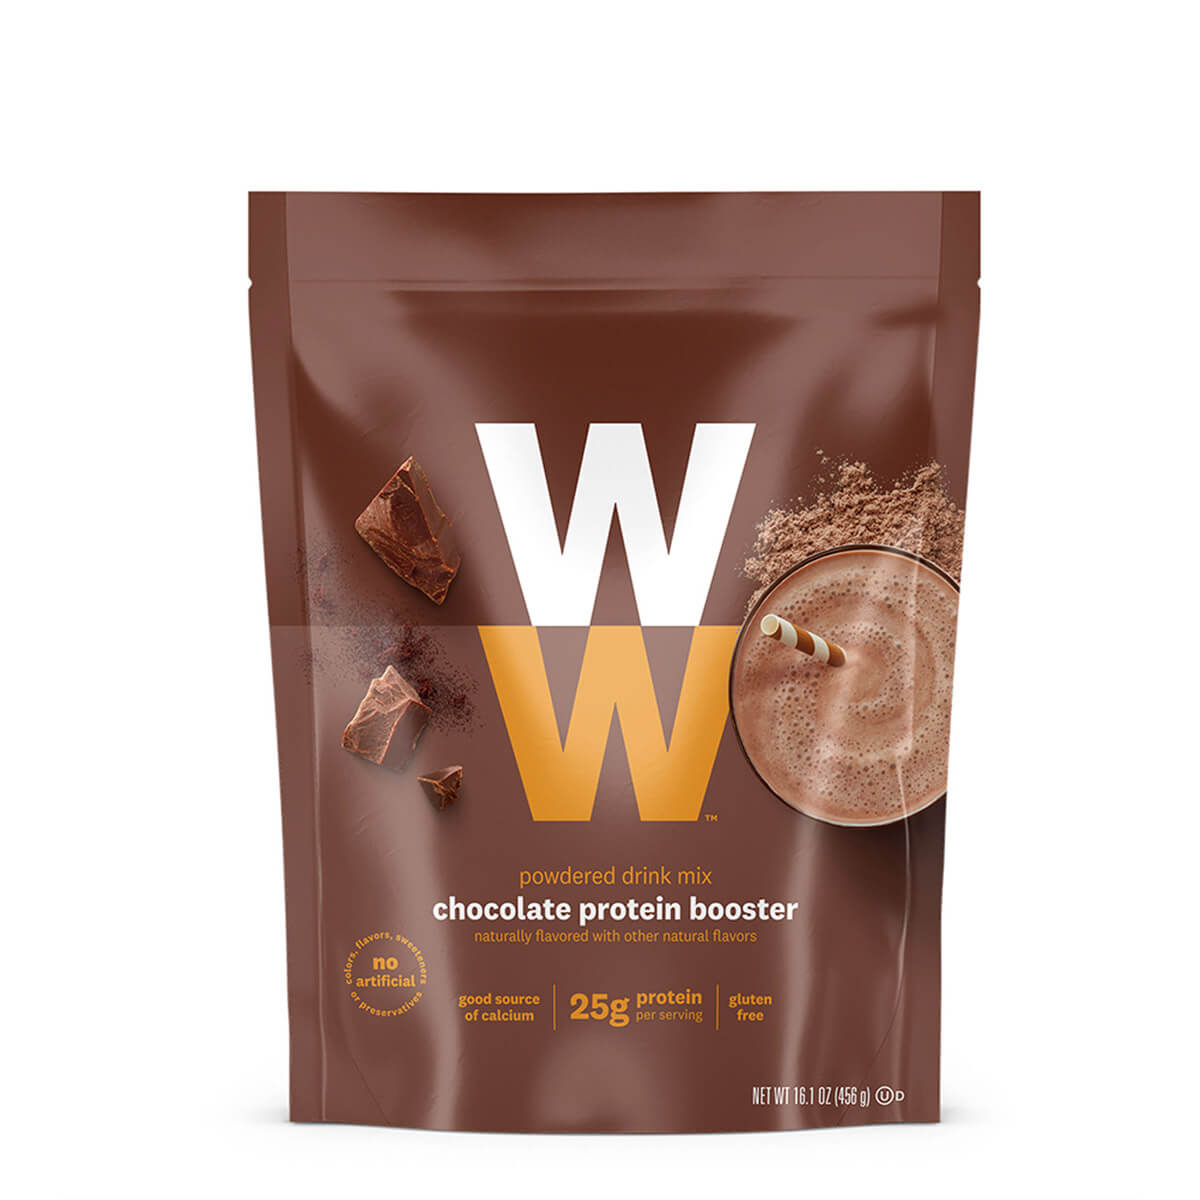 Chocolate Protein Booster, front of bag, powdered drink mix, 25g of protein, gluten free